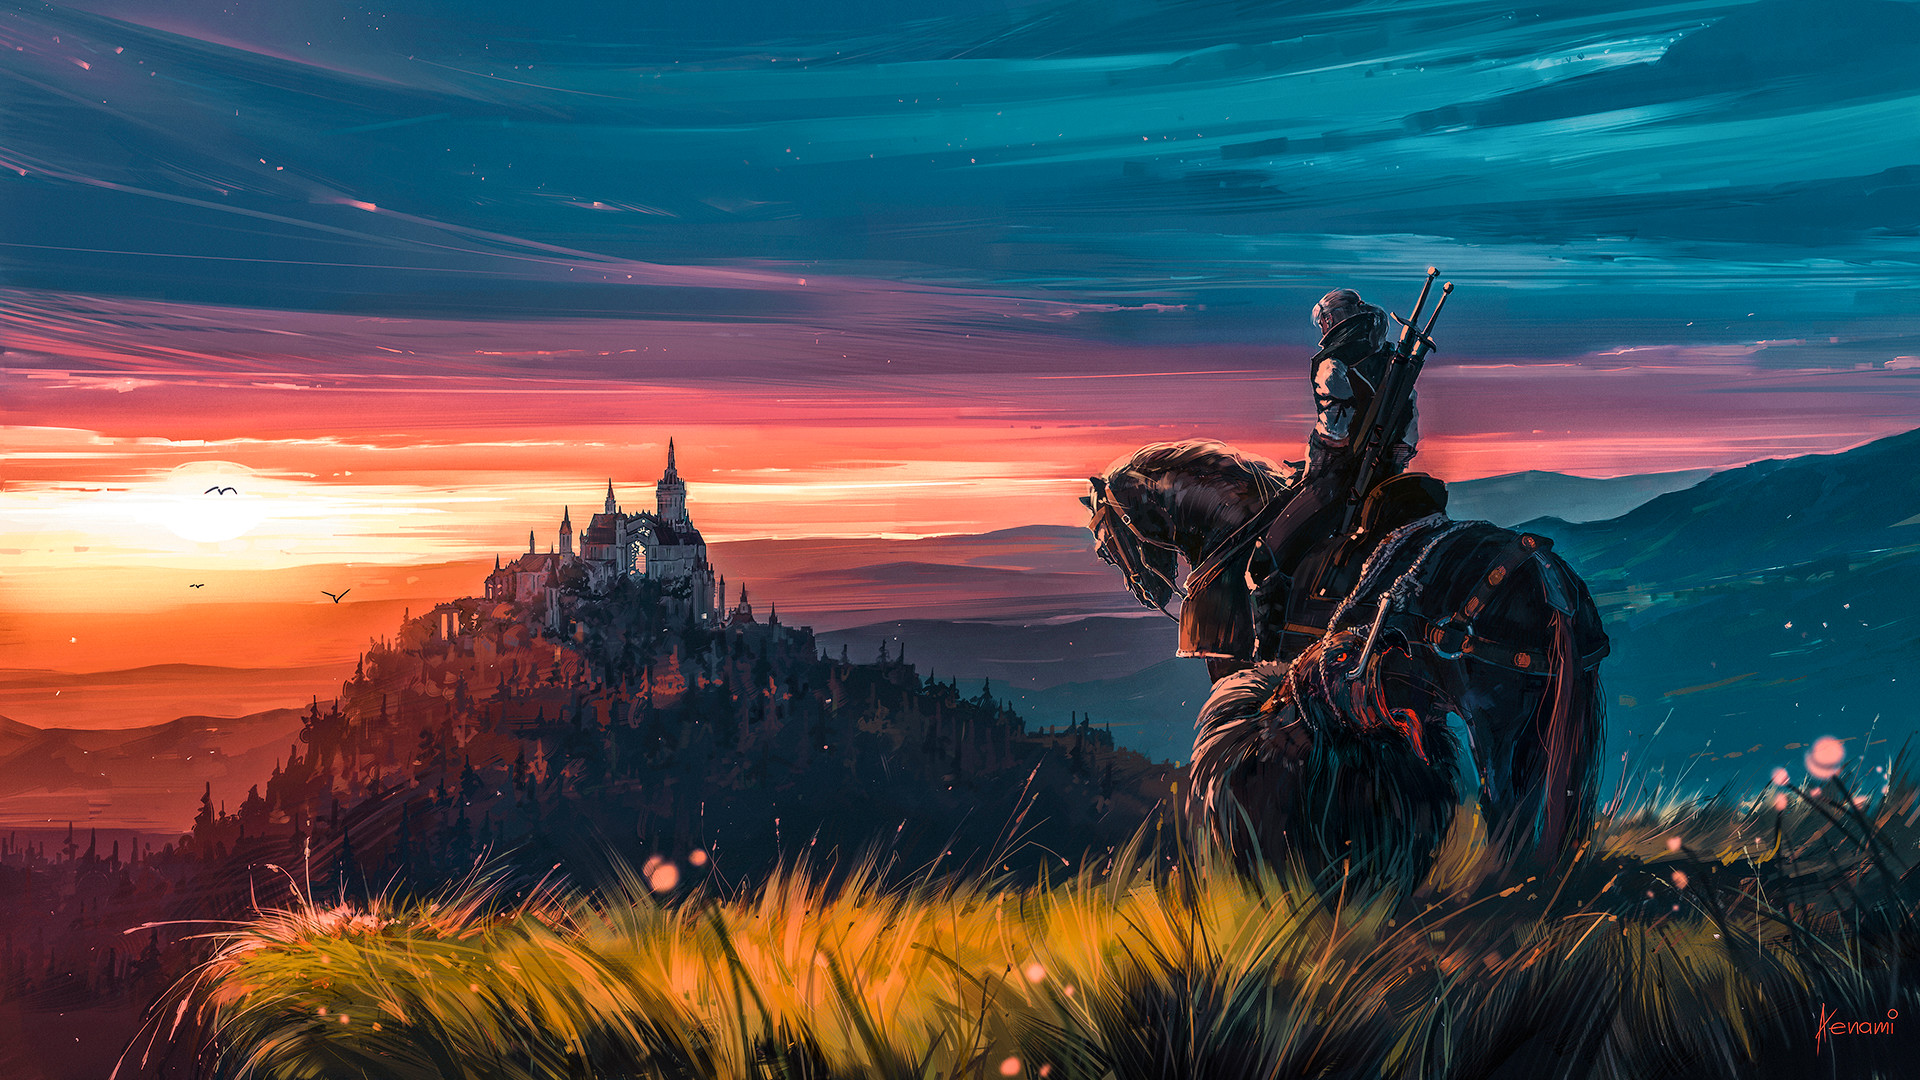 the-witcher-contest - The Witcher 3: Wild Hunt